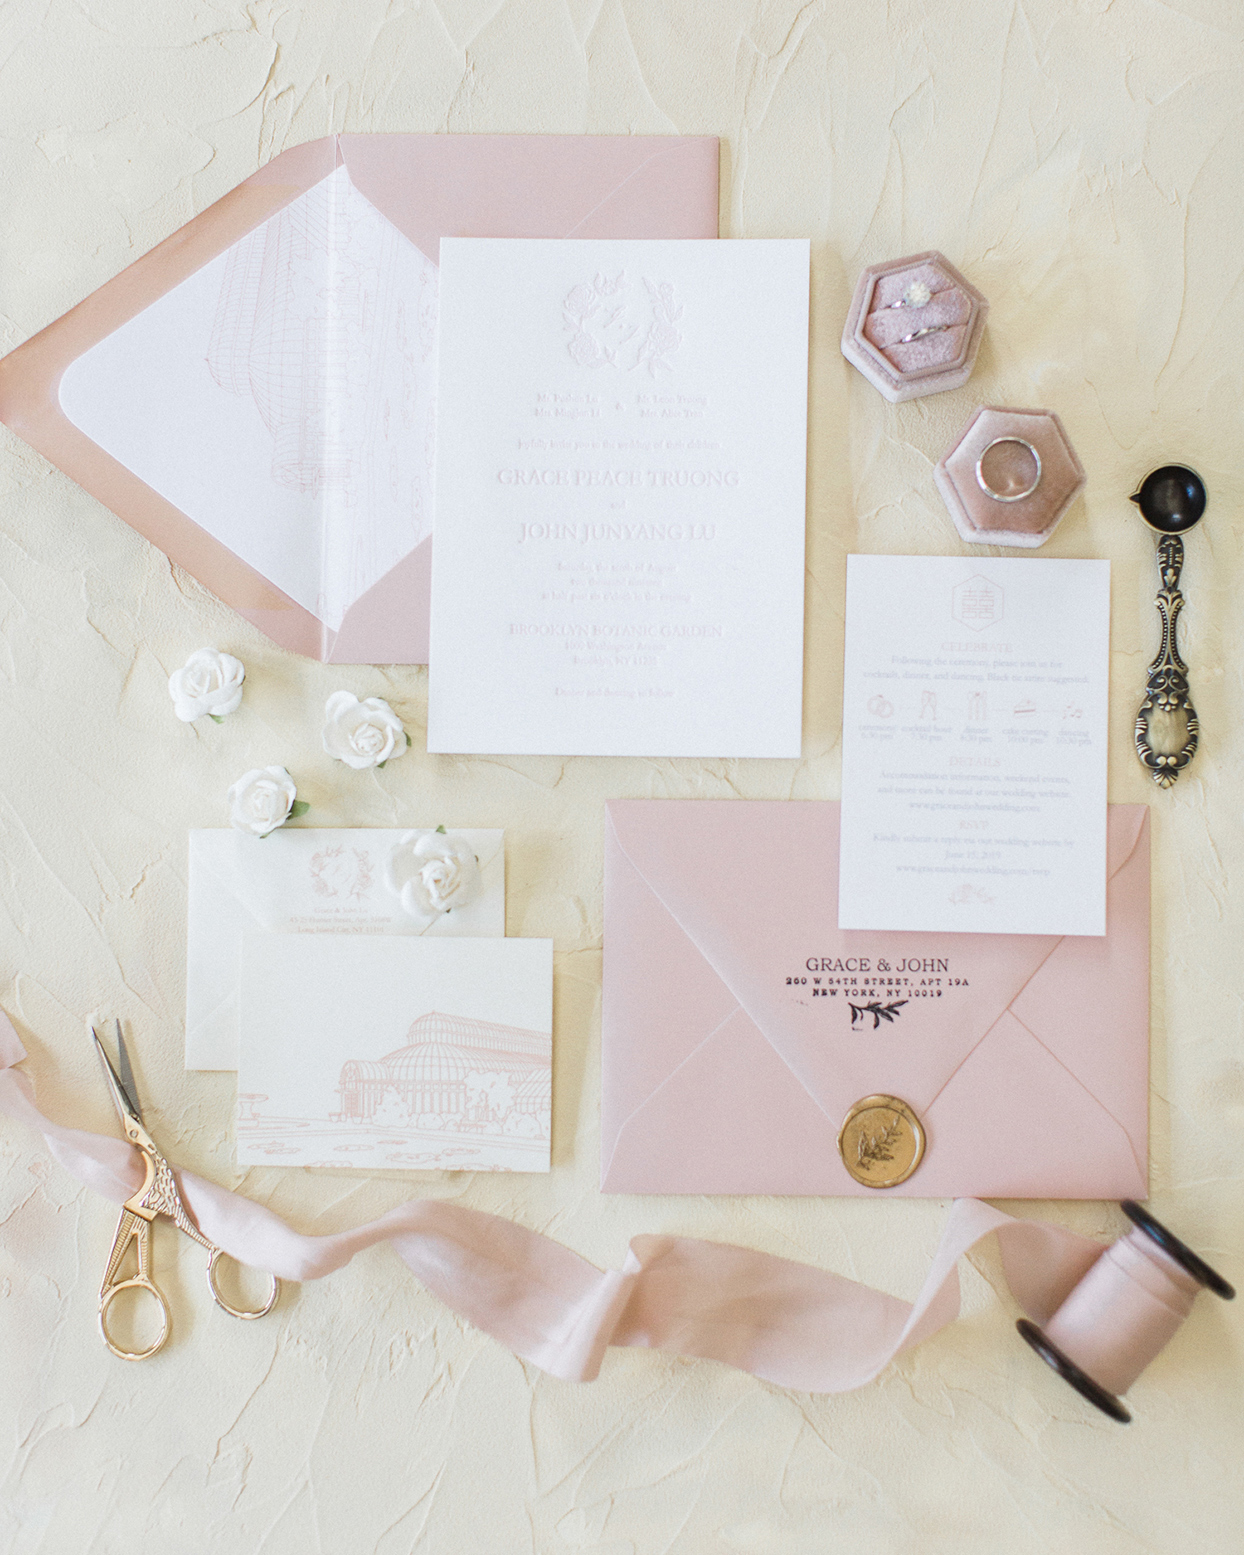 grace john wedding pastel pink and white invitations